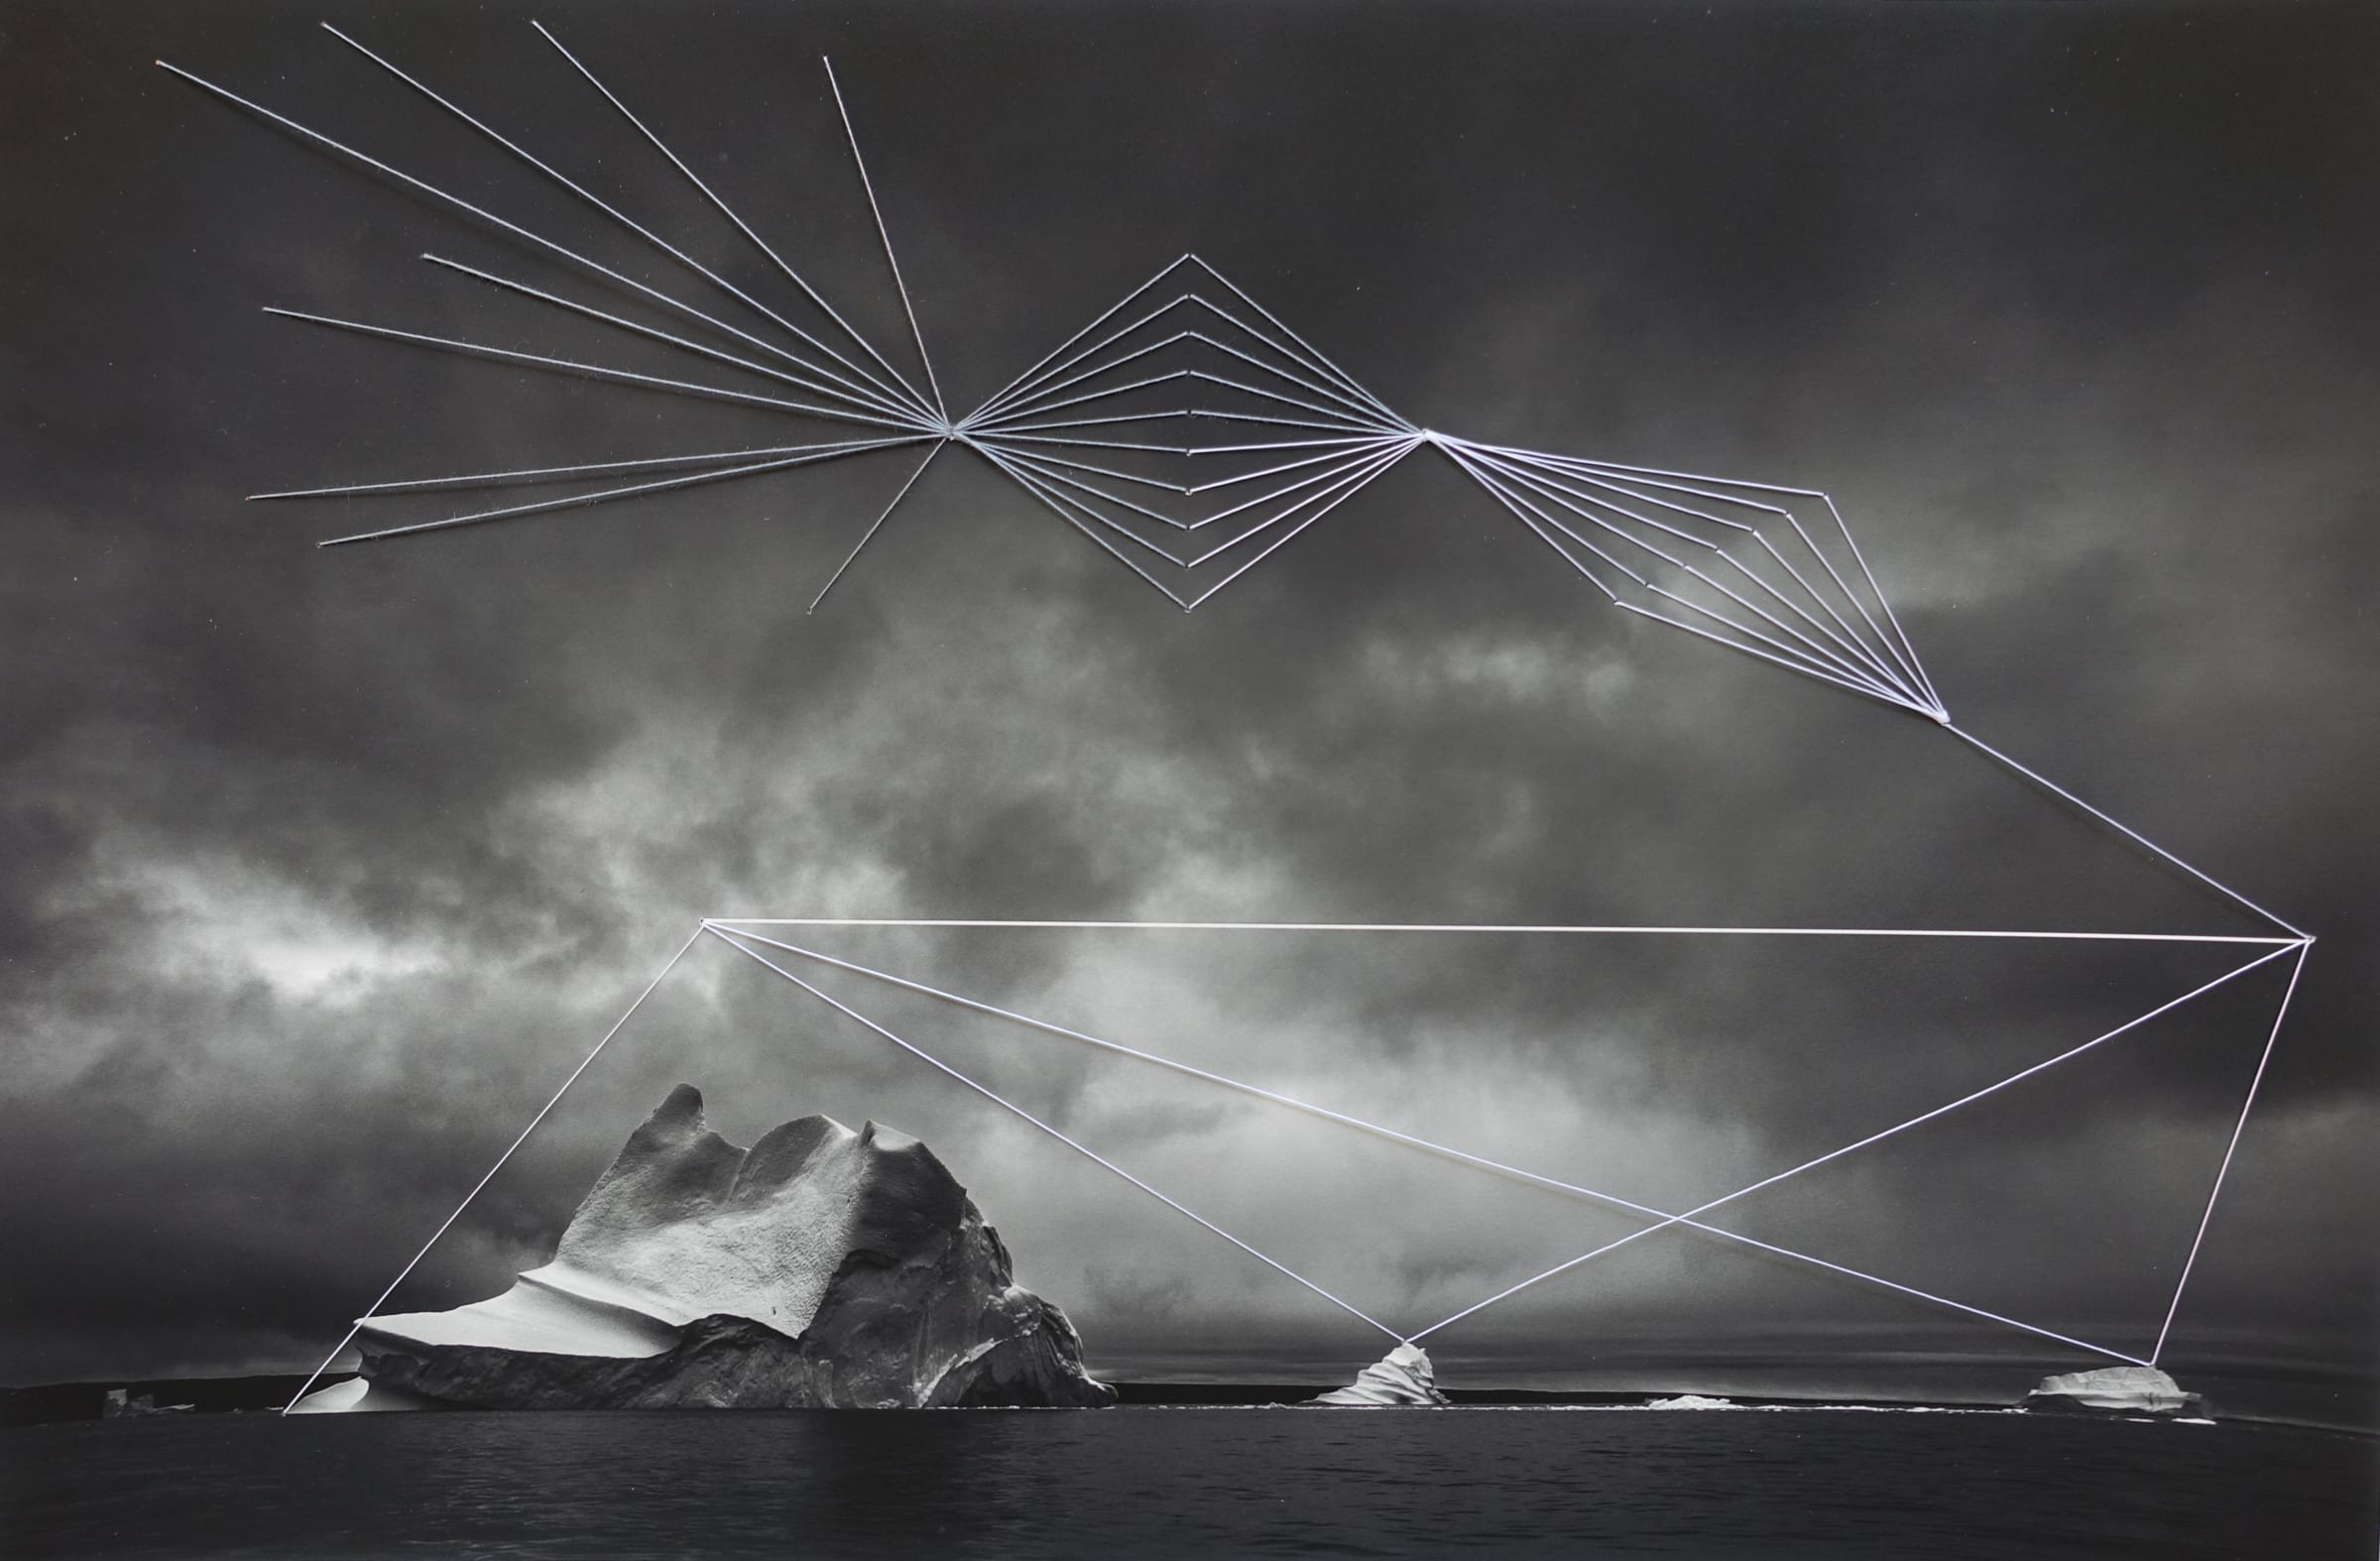 """<span class=""""link fancybox-details-link""""><a href=""""/artists/52-adriene-hughes/works/892-adriene-hughes-threaded-iceberg-bw-no.-2-2019/"""">View Detail Page</a></span><div class=""""artist""""><strong>Adriene Hughes</strong></div> <div class=""""title""""><em>Threaded Iceberg BW No. 2</em>, 2019</div> <div class=""""medium"""">Archival Pigment Print on Cotton Rag with Cotton Quilting Thread<br /> Print only<br /> Unique</div> <div class=""""dimensions"""">20.3 x 30.5 cm<br /> 8 x 12 in</div><div class=""""copyright_line"""">Copyright Adriene Hughes<br></div>"""